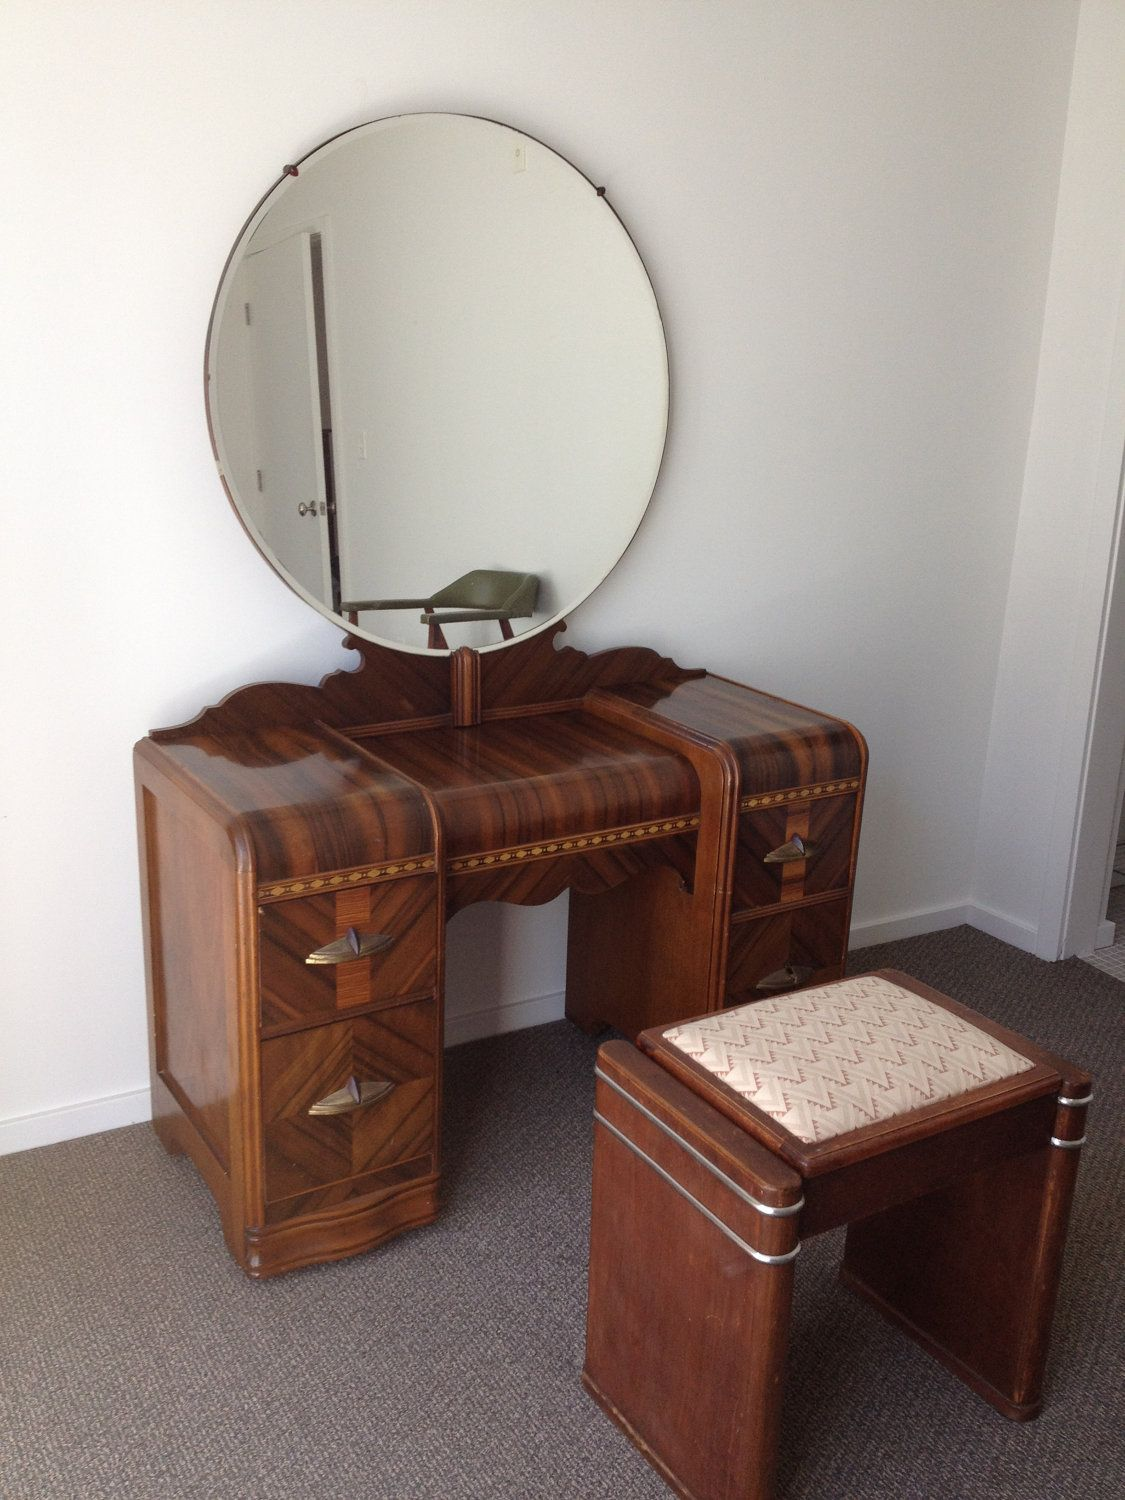 antique bedroom furniture 1930 1930's Art Deco Waterfall Bedroom Furniture   6 Pieces. $900.00  antique bedroom furniture 1930